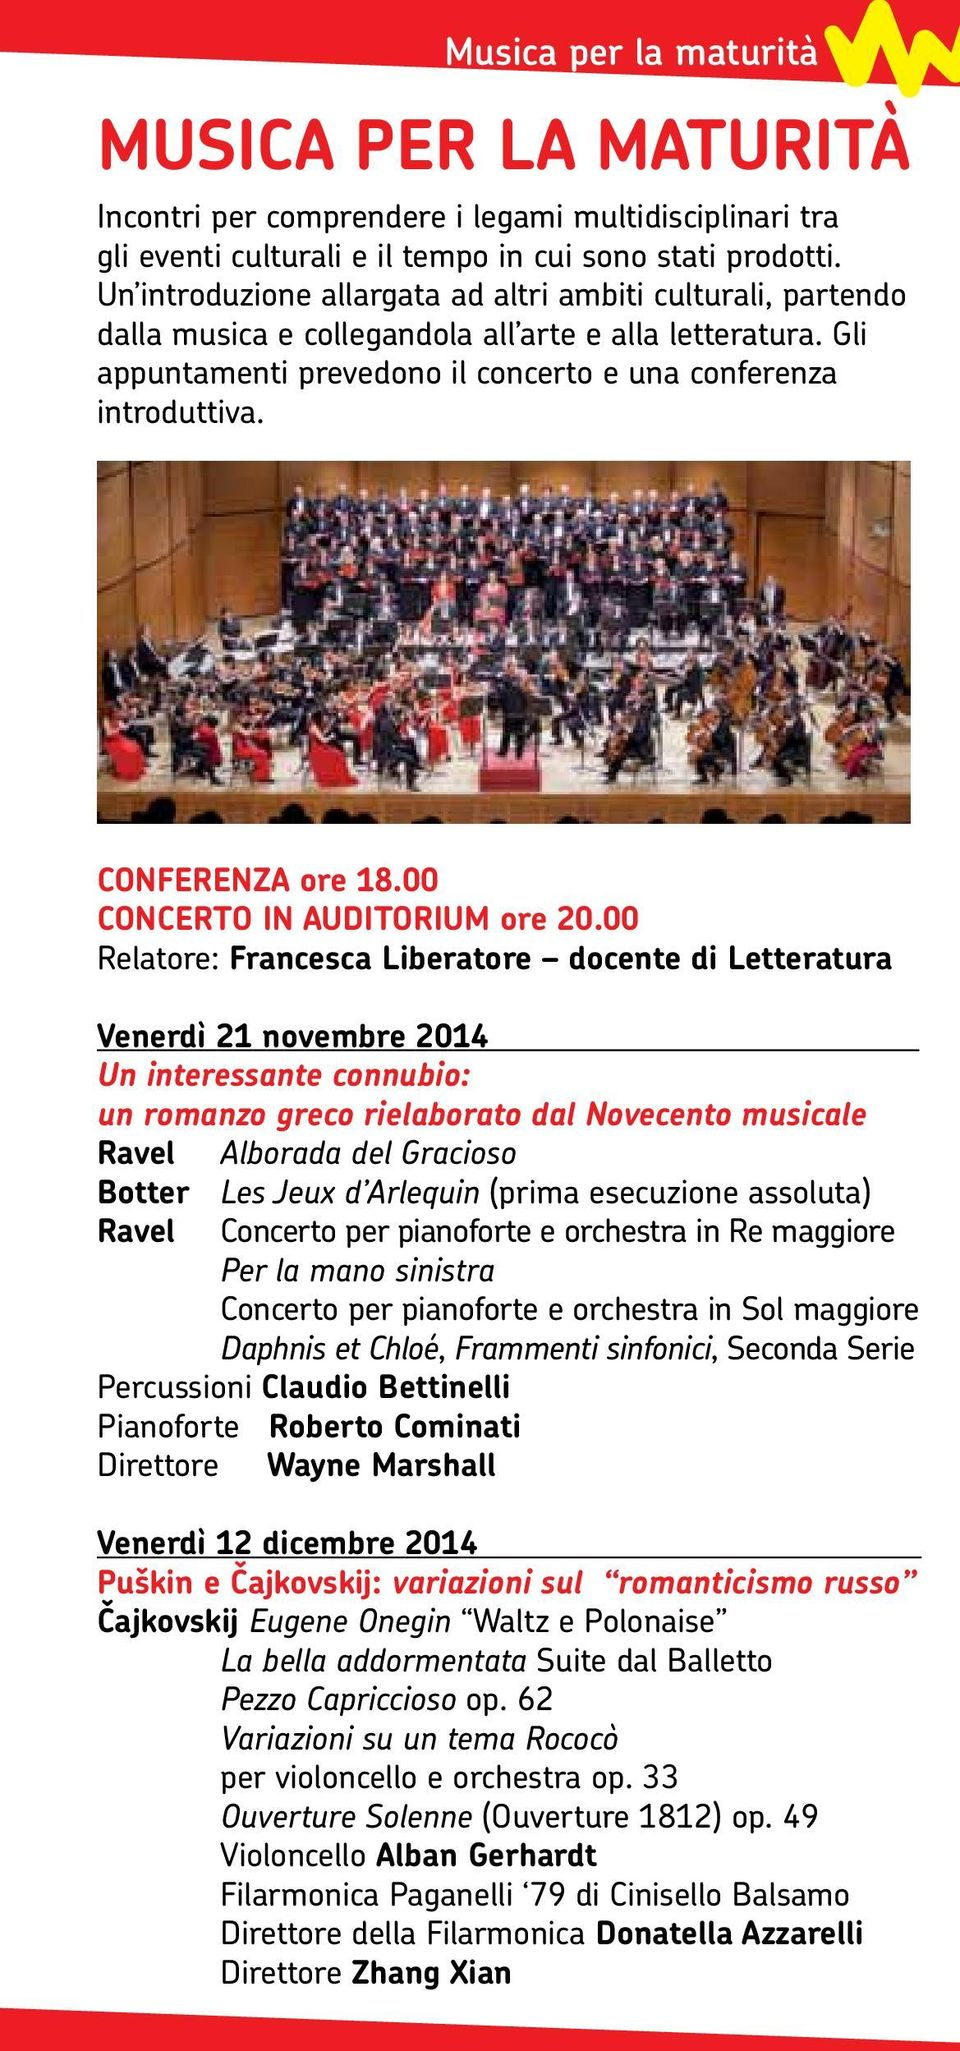 CONFERENZA ore 18.00 CONCERTO IN AUDITORIUM ore 20.